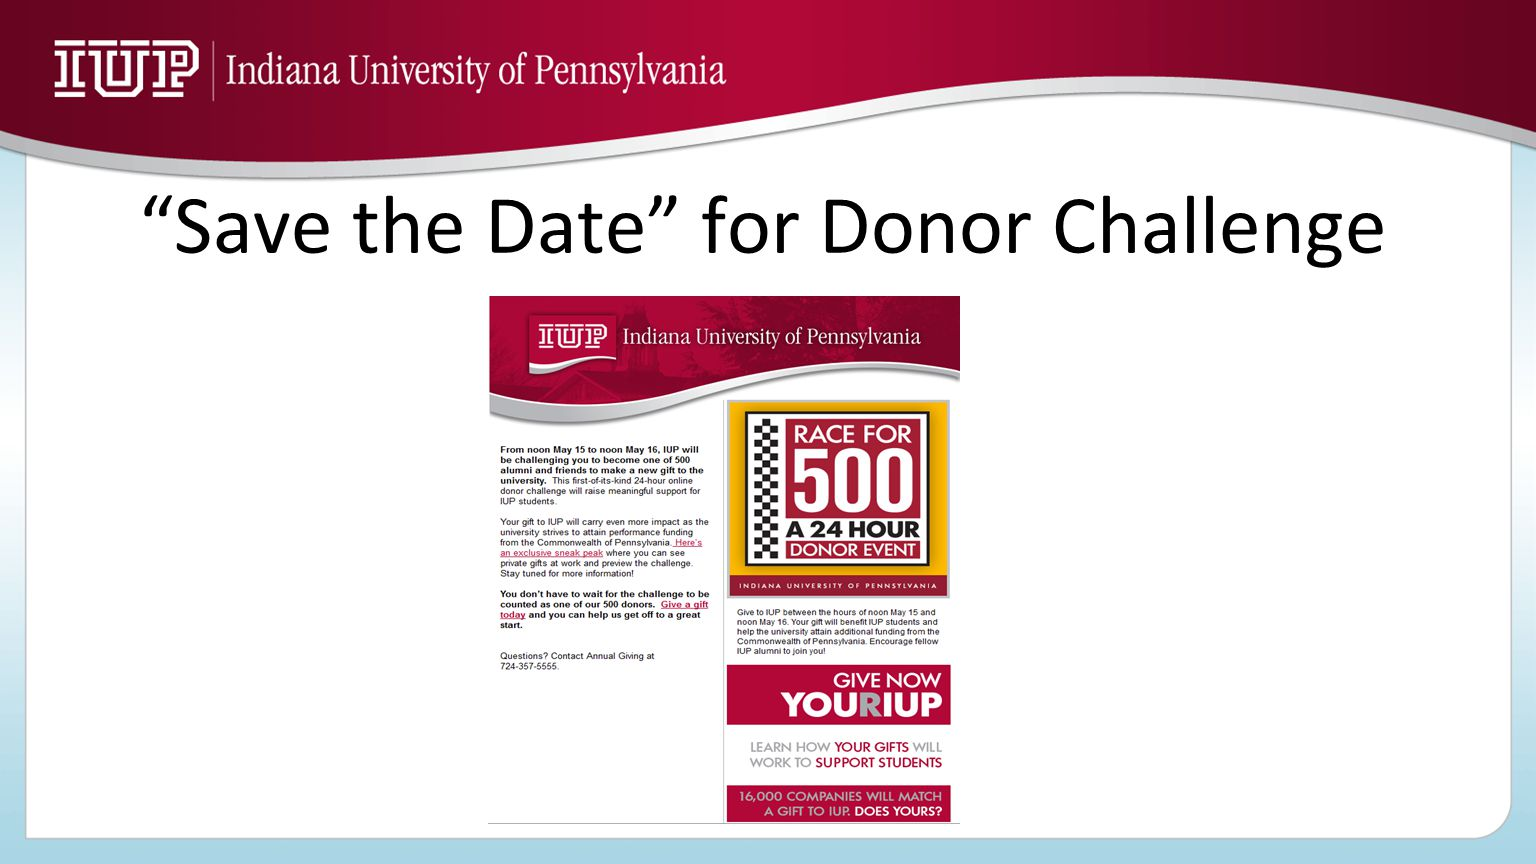 Save the Date for Donor Challenge